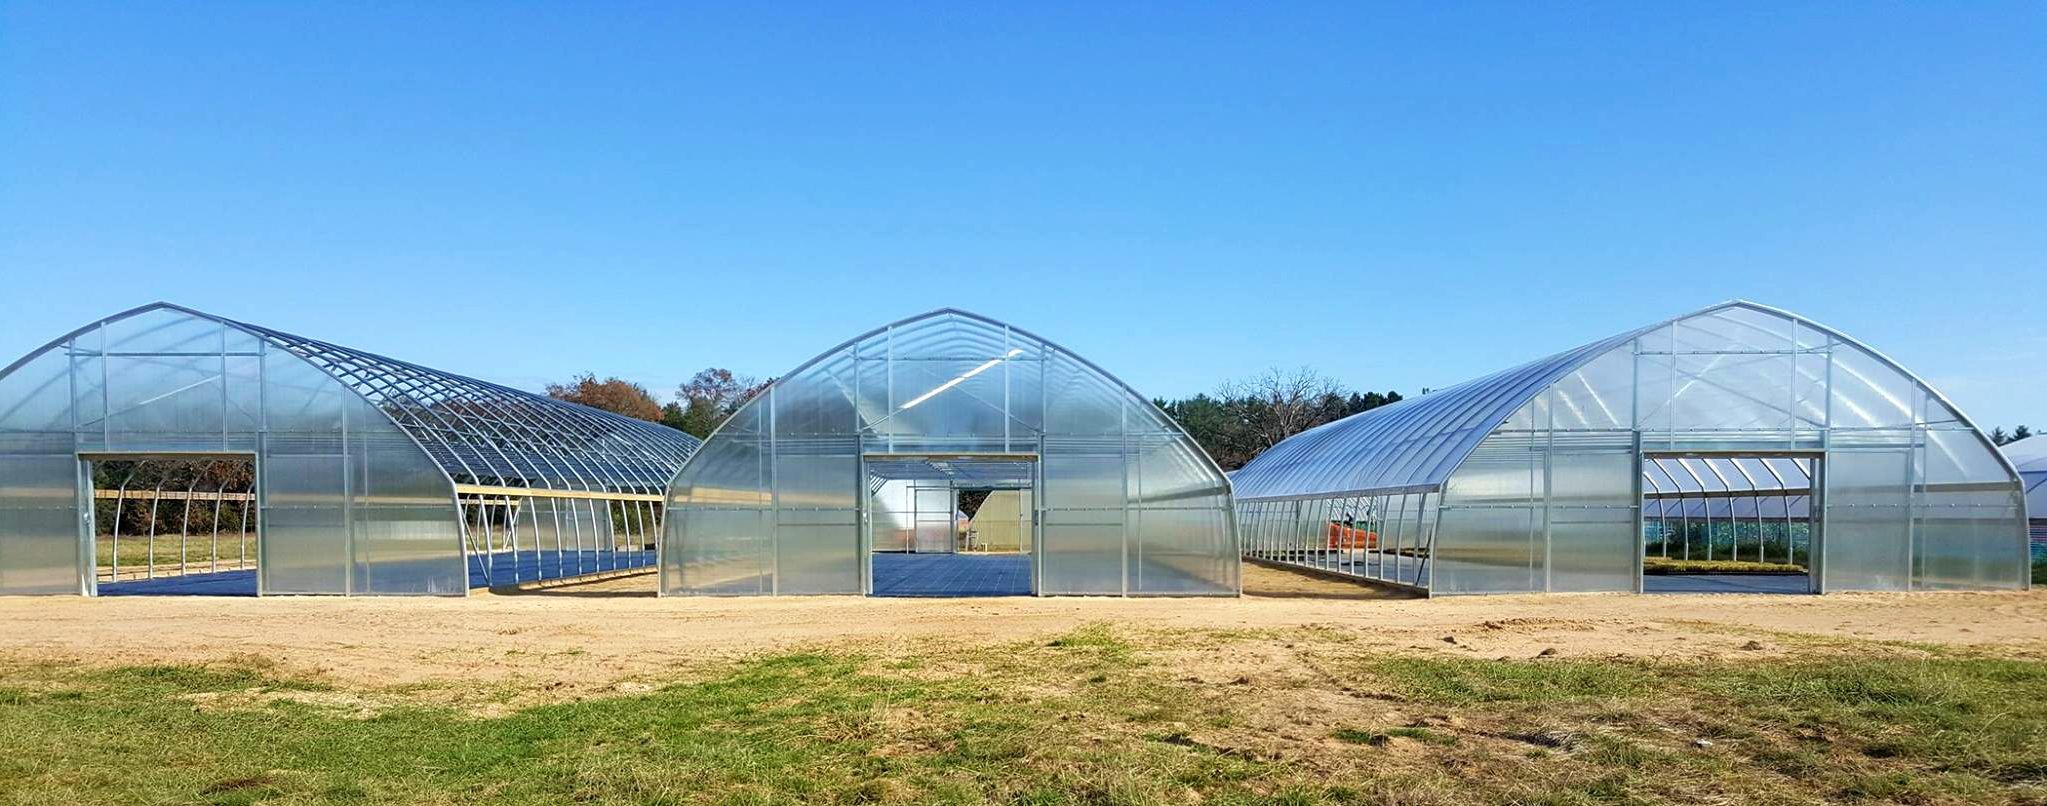 Prairie Nursery Grows Important Native Plants in its ATI Greenhouses | Agra Tech